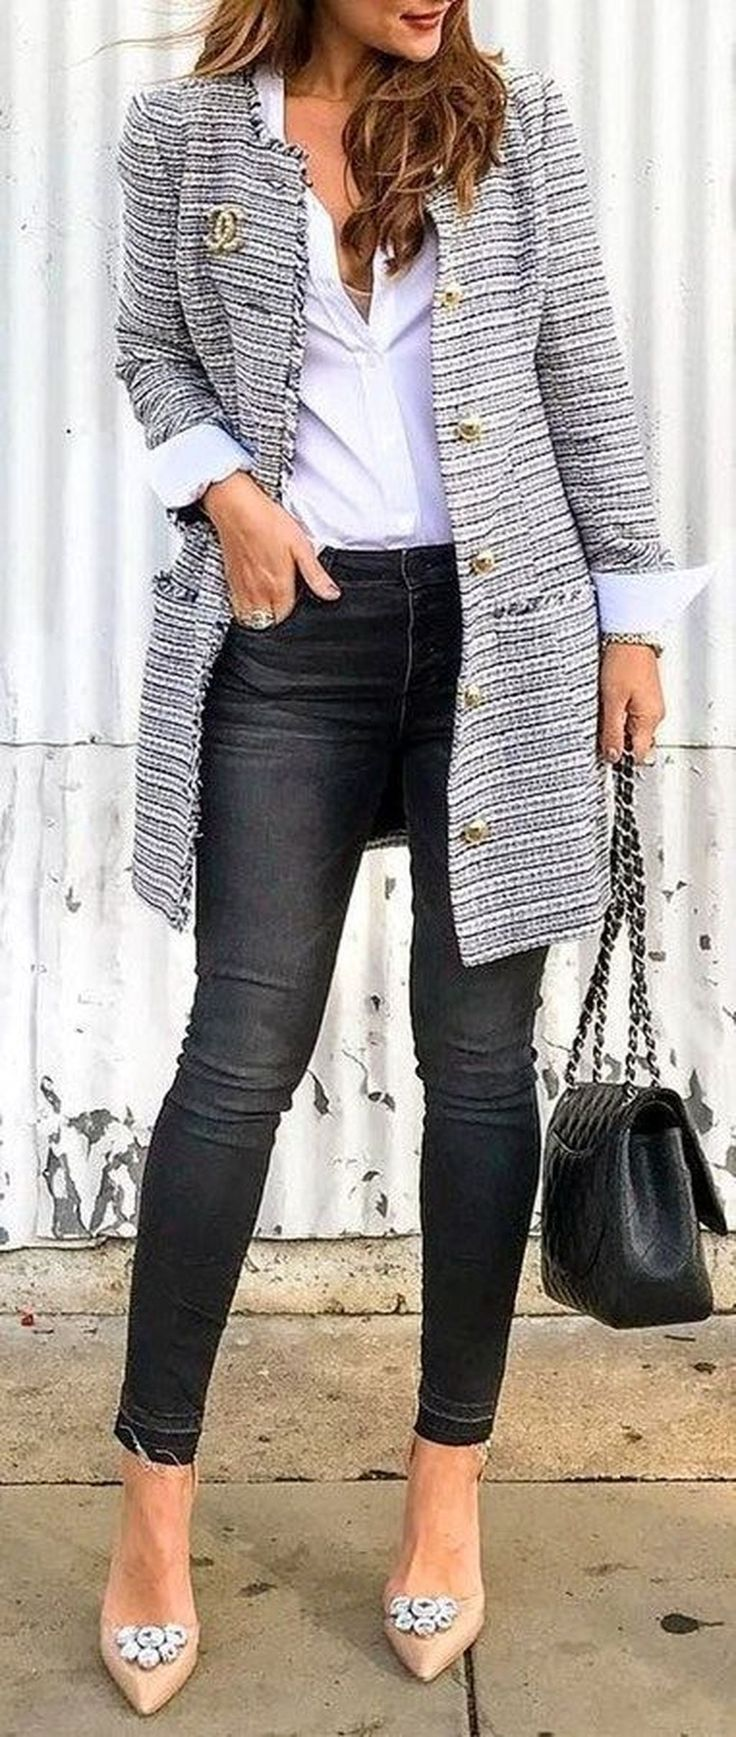 Best 25+ Winter work outfits ideas on Pinterest